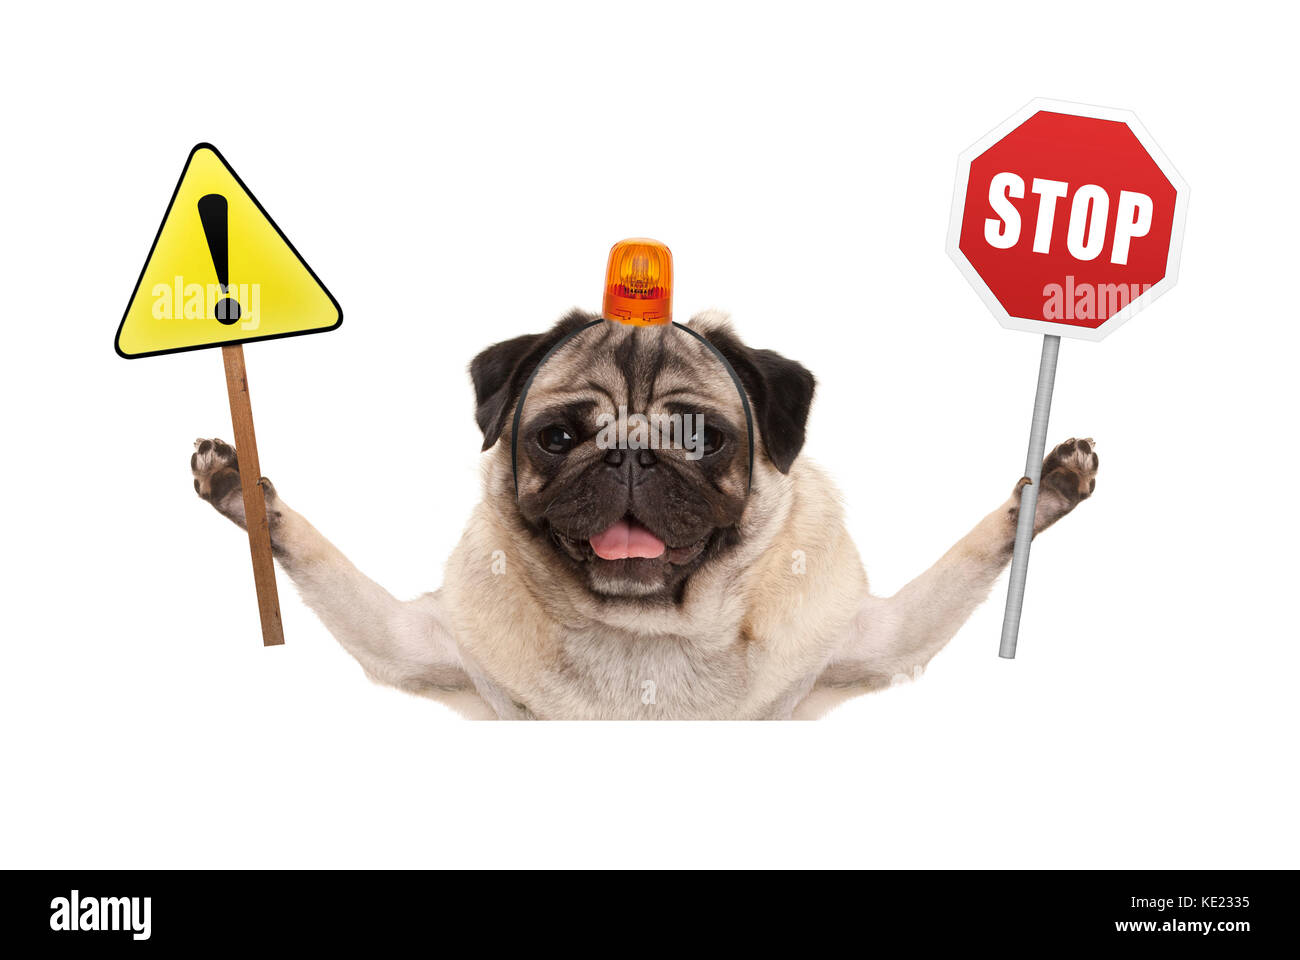 smiling pug dog holding up red stop sign  and yellow exclamation mark sign, with orange flashing light on head, - Stock Image